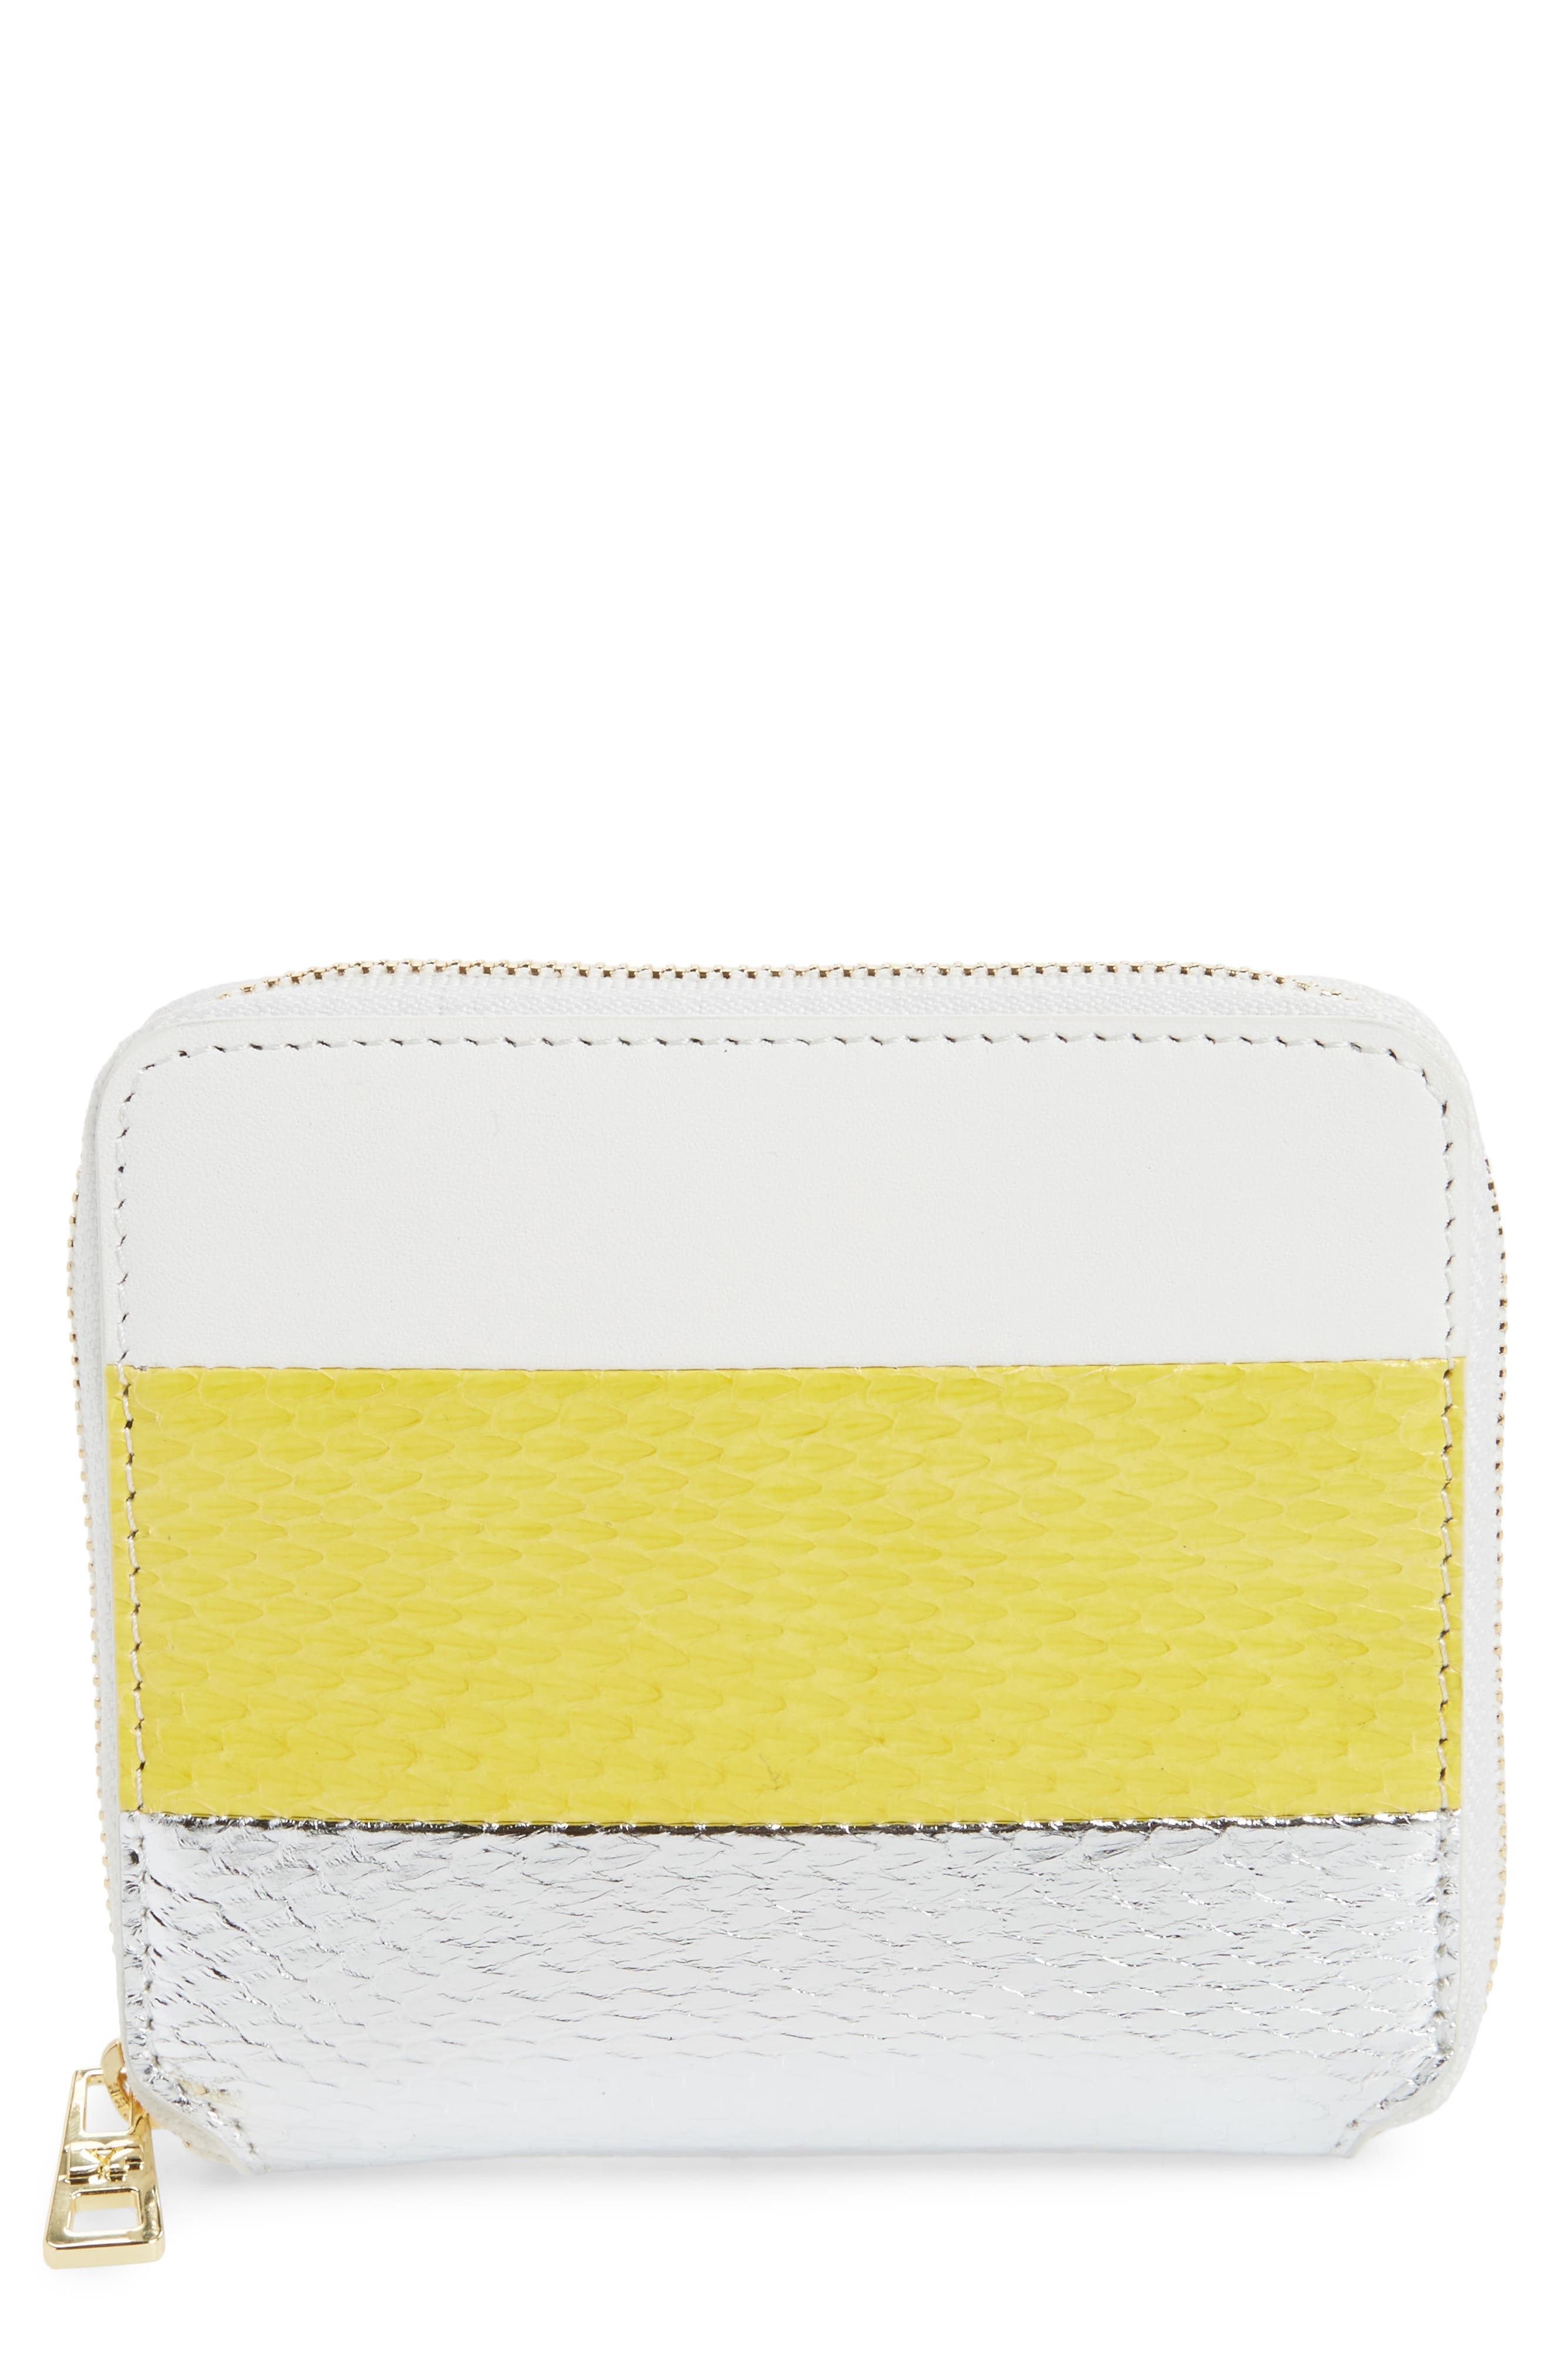 Small Leather & Genuine Snakeskin Zip Wallet,                             Main thumbnail 1, color,                             Yellow/ Silver/ White